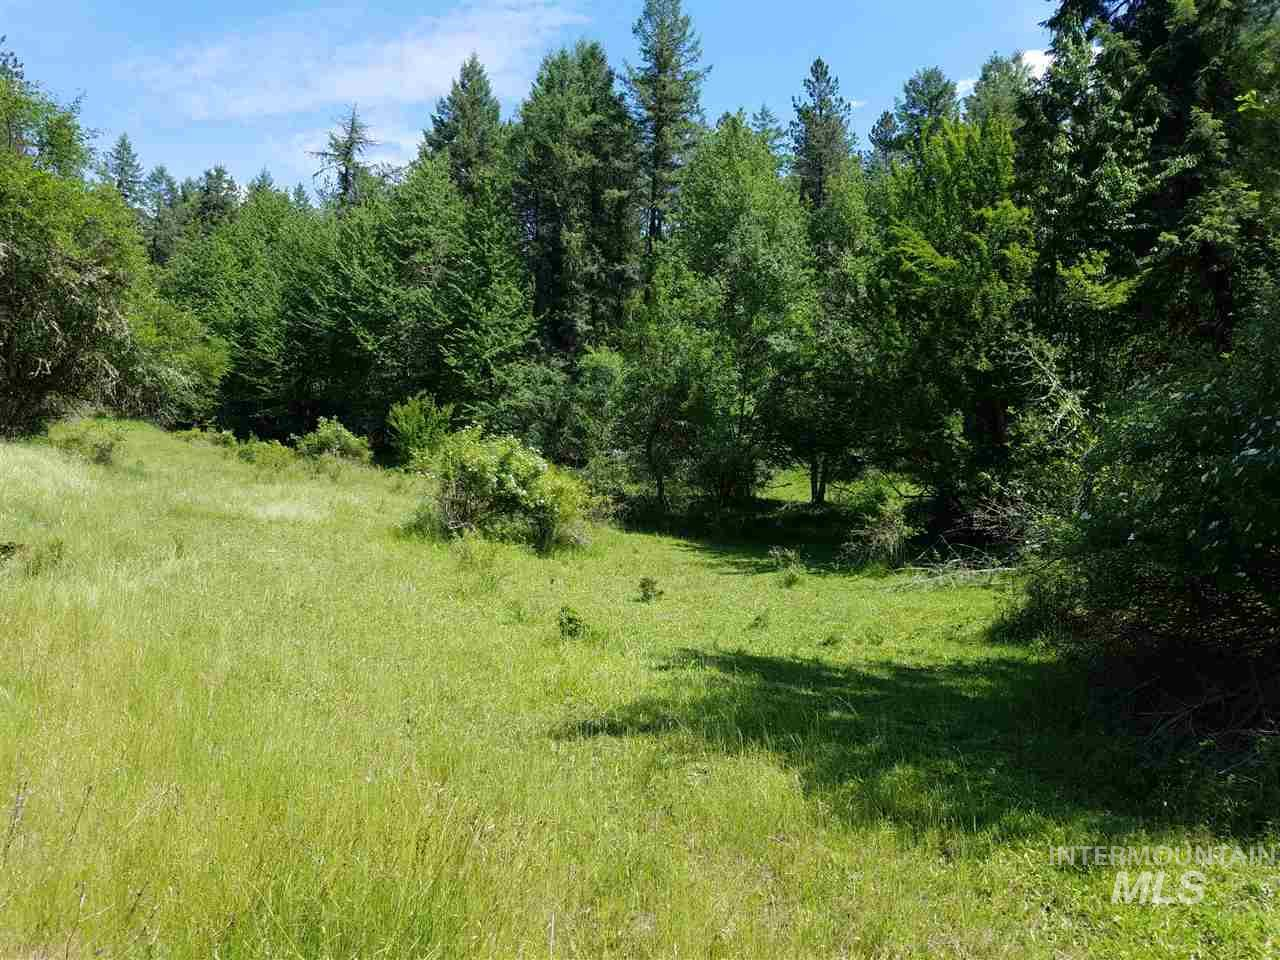 Land for Sale at TBD Hwy 13 TBD Hwy 13 Harpster, Idaho 83552